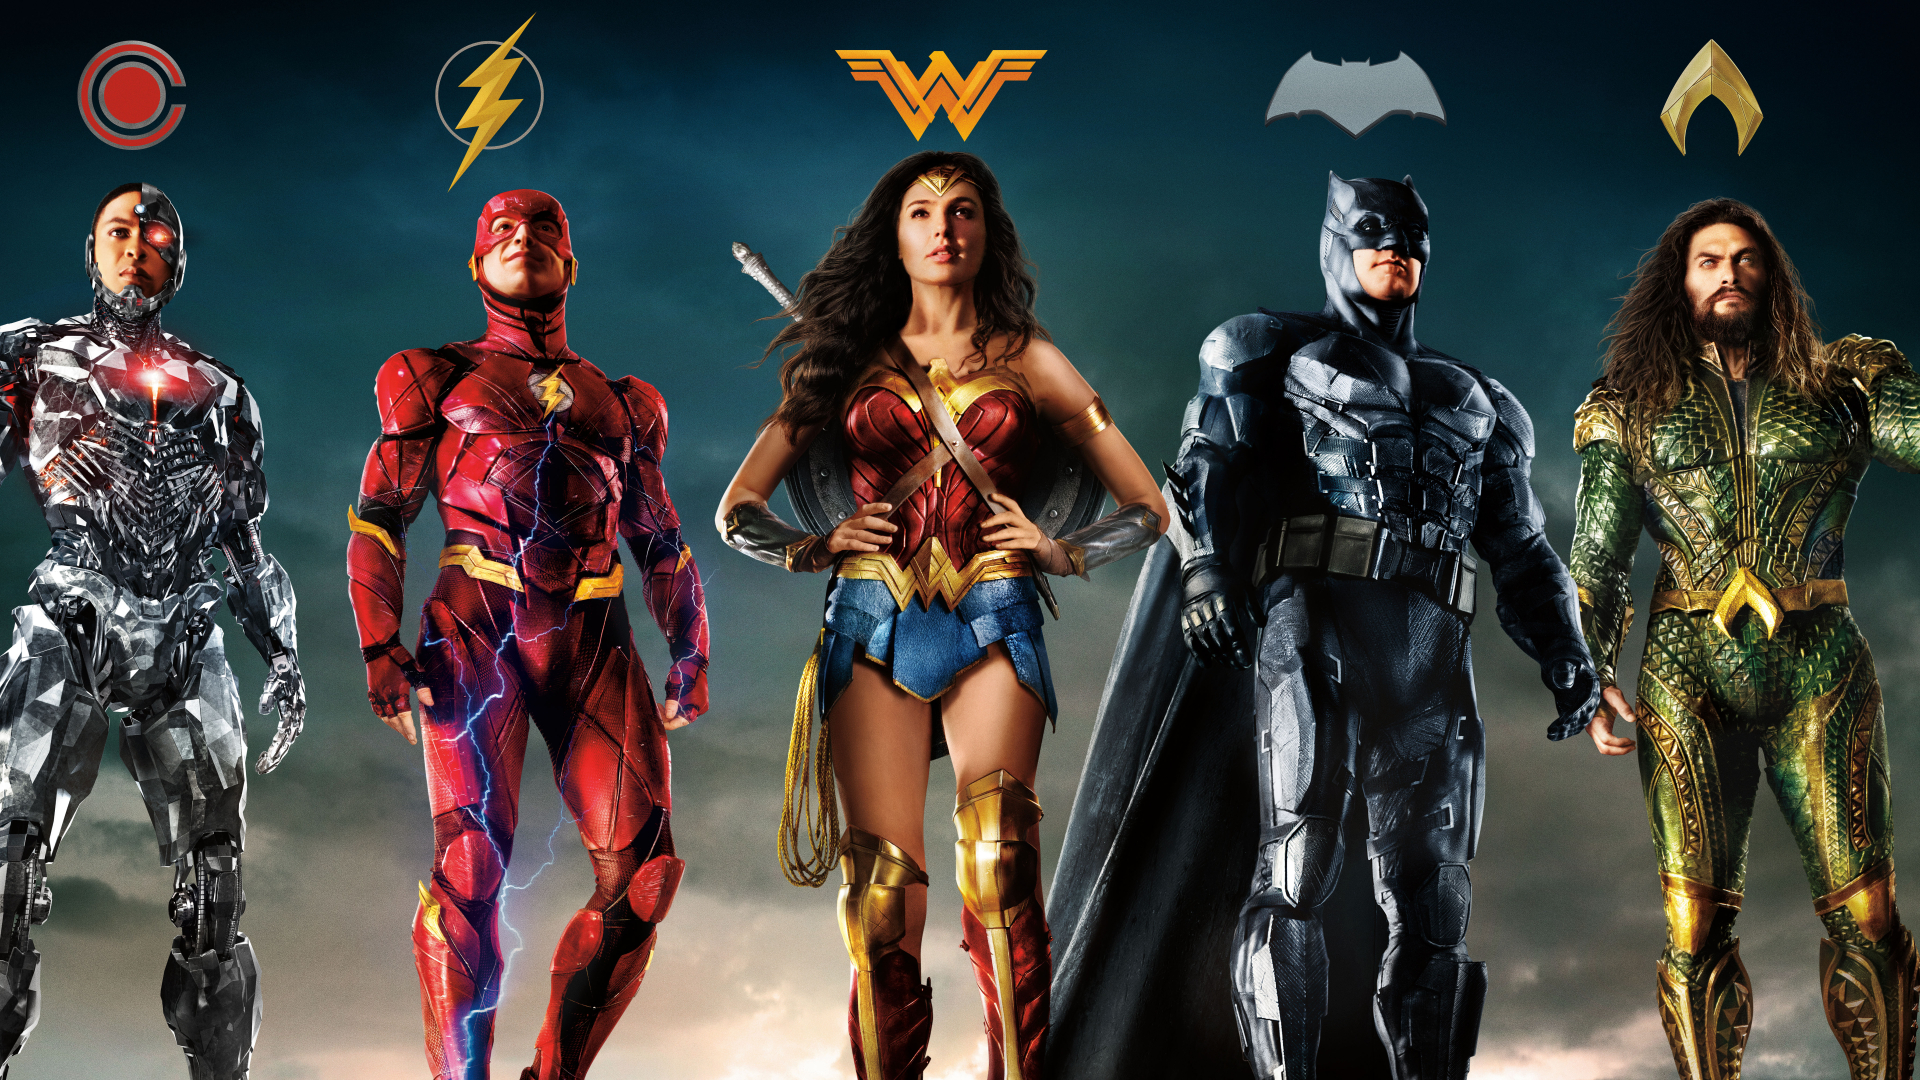 1920x1080 Justice League 2017 Superheroes Poster 1080p Laptop Full